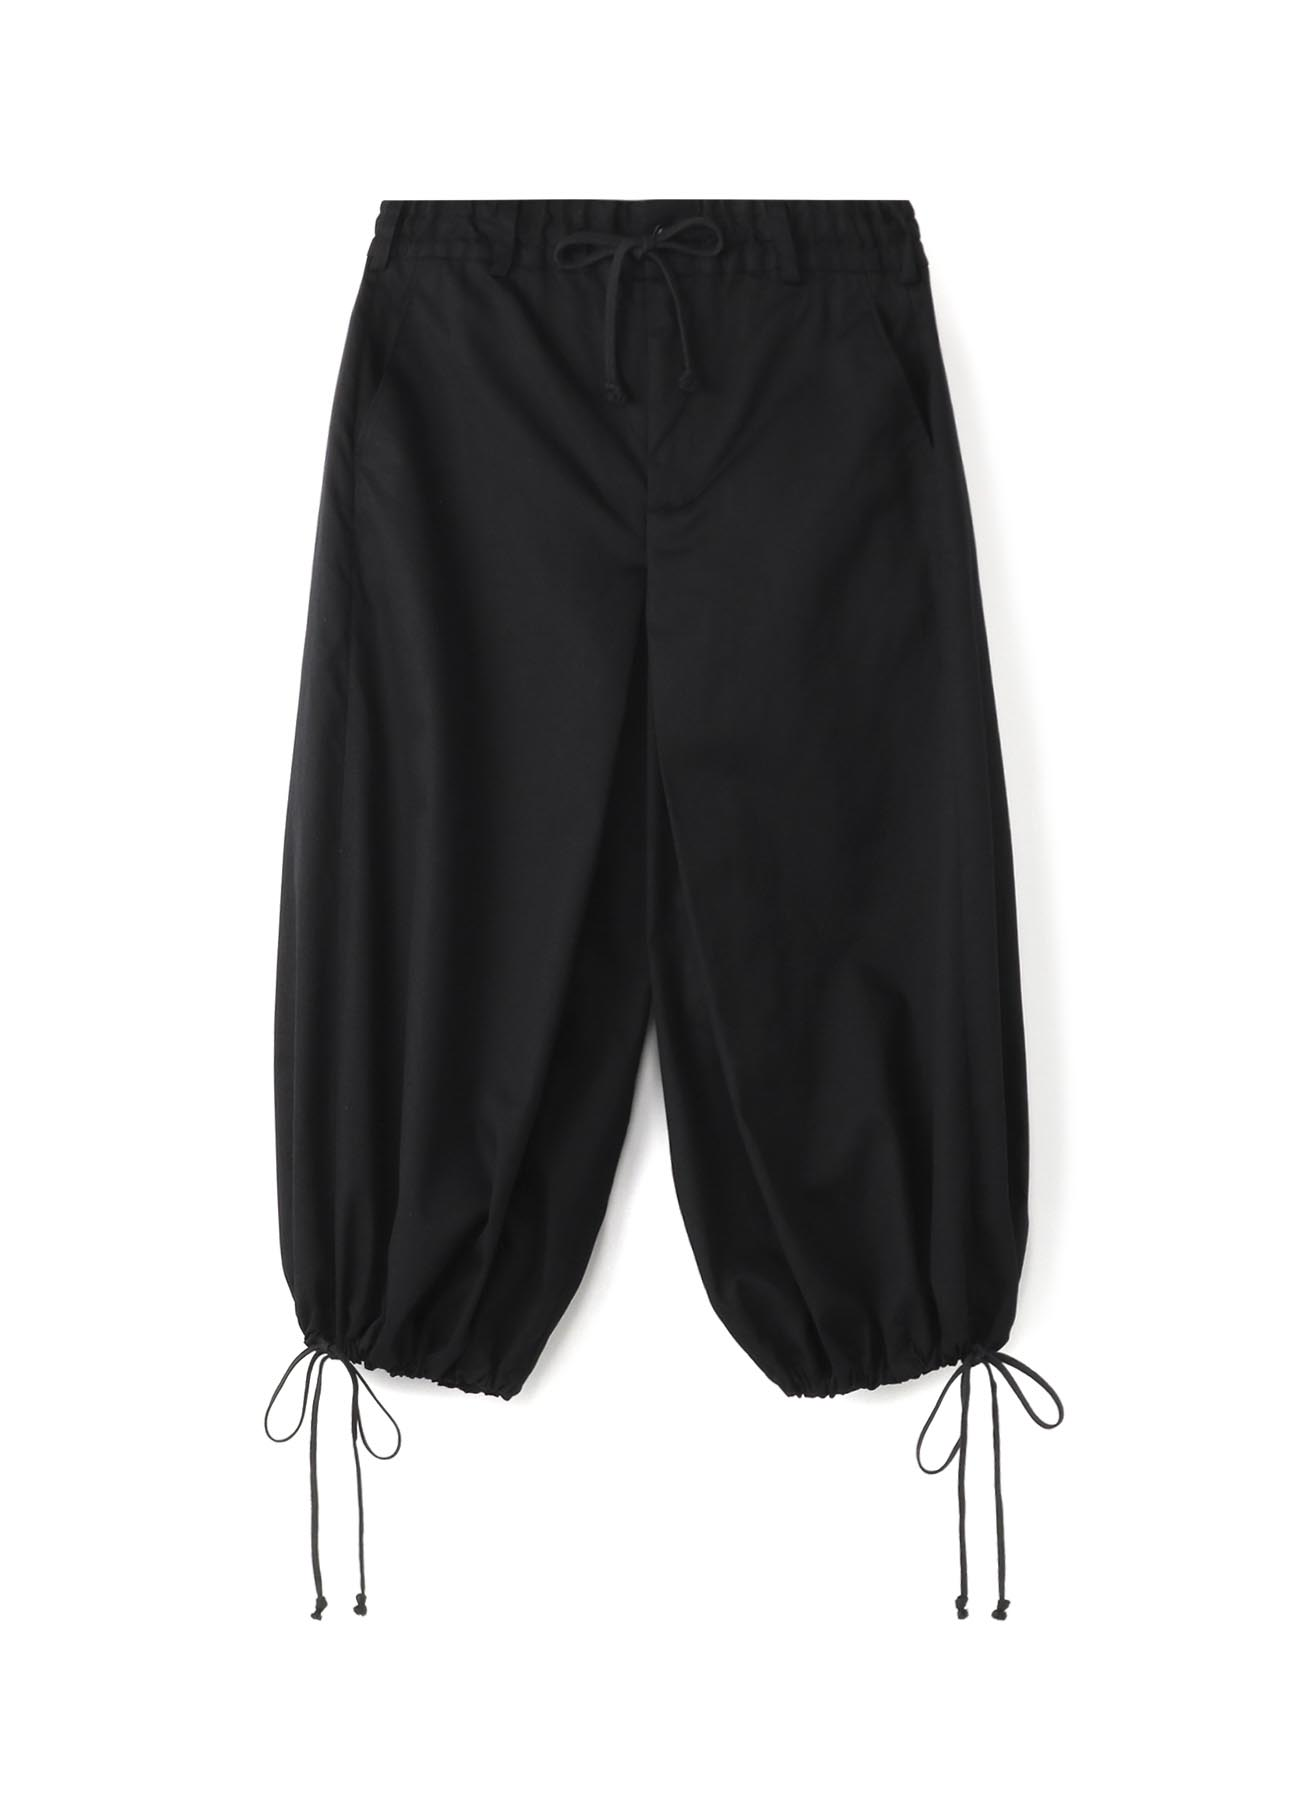 20/Cotton Twill Washer Hakama Balloon Pants